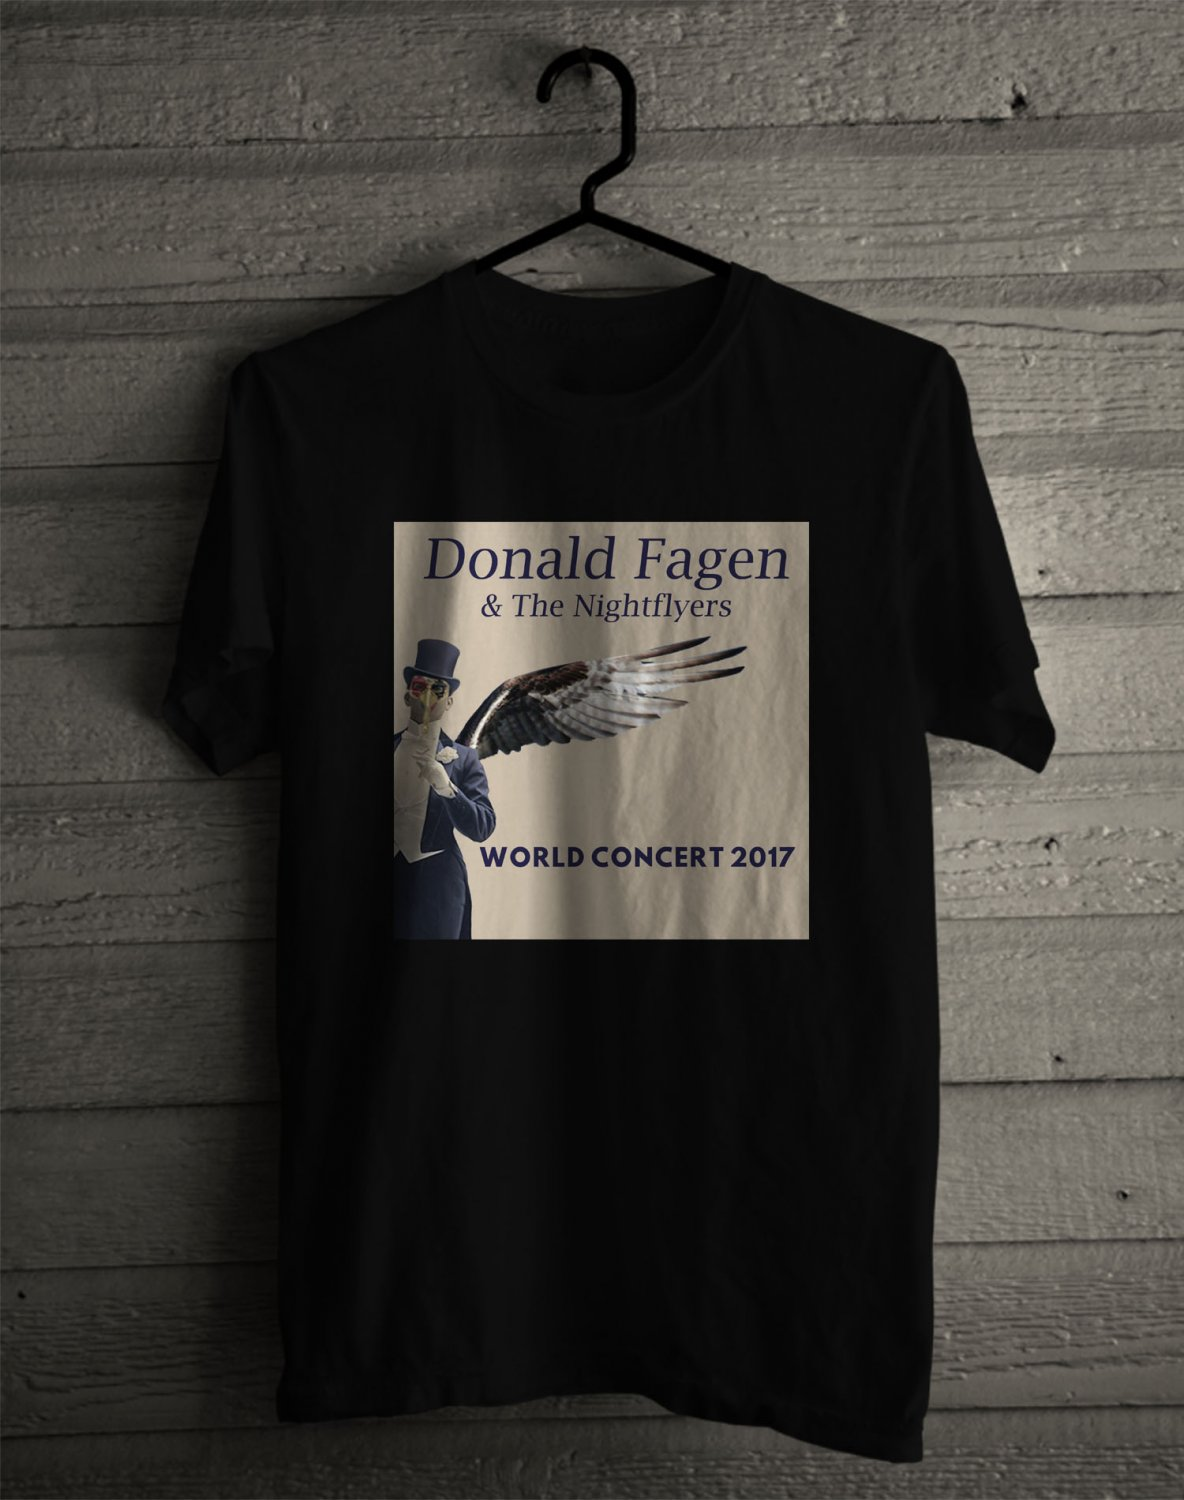 Donald Fagen and The Nightflyers Tour 2017 Black Tee's Front Side by Complexart z1